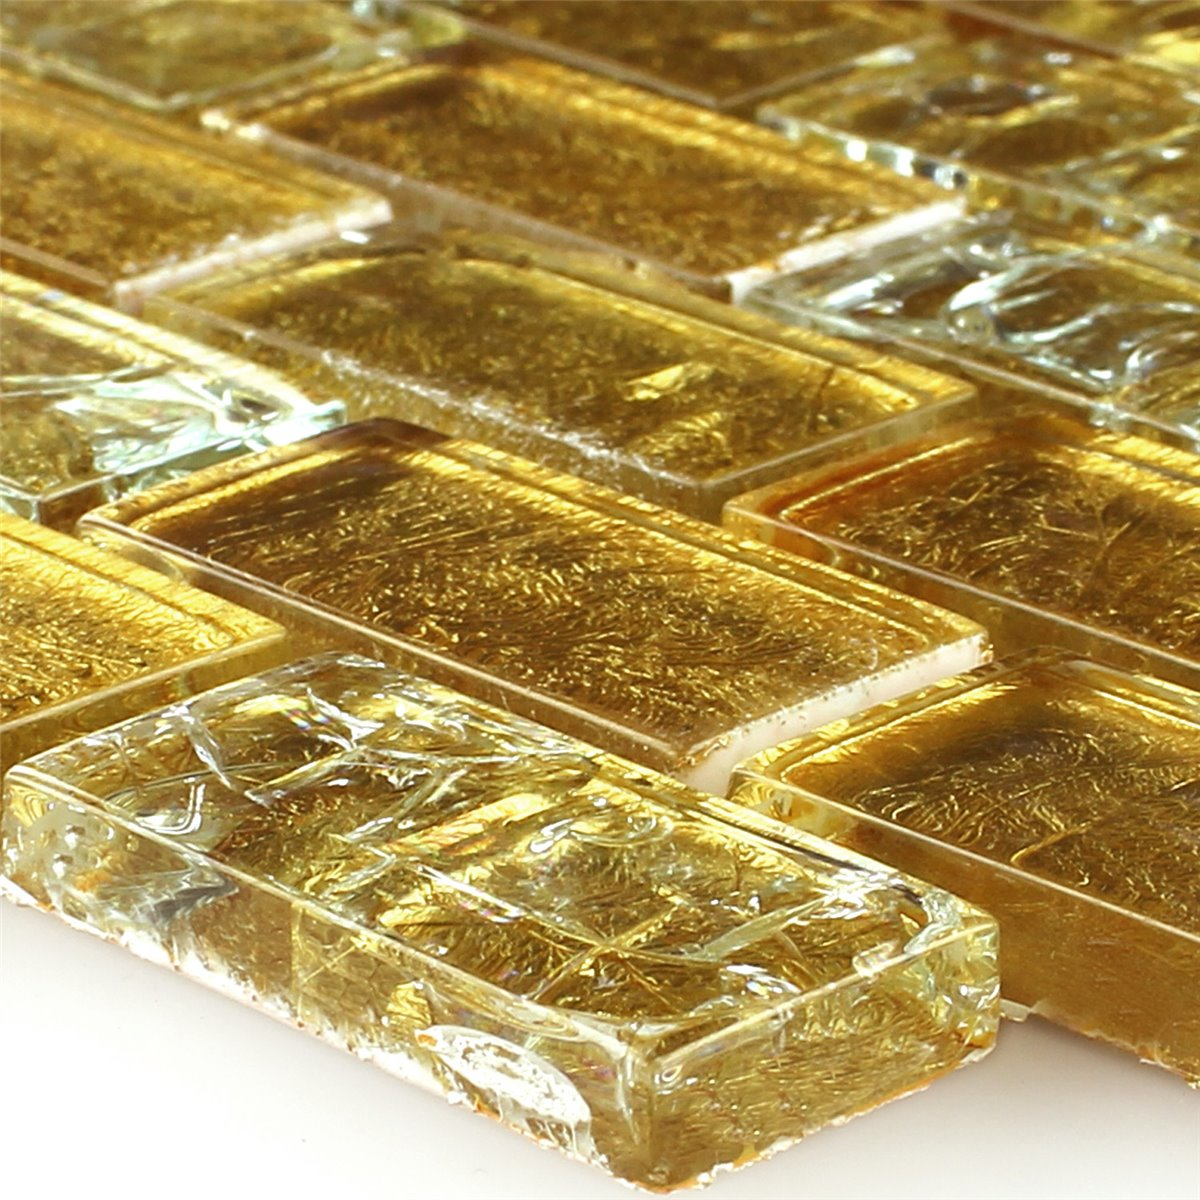 mosaic tiles glass broken glass effect gold 23x48x8mm - Mosaic Tiles